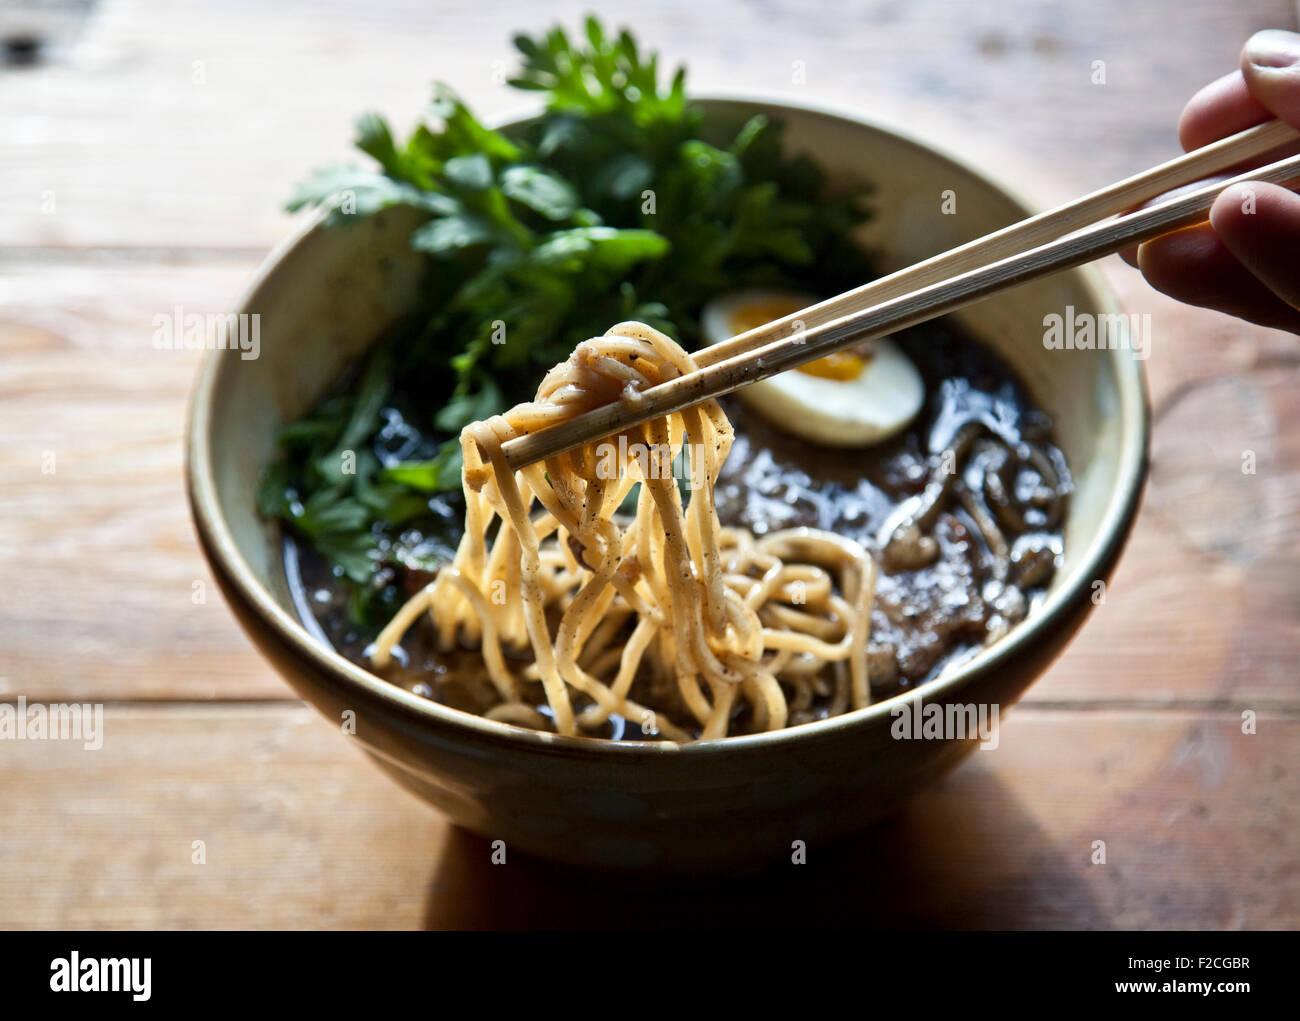 overhead view of ramen with hand holding chop sticks and noodles Stock Photo